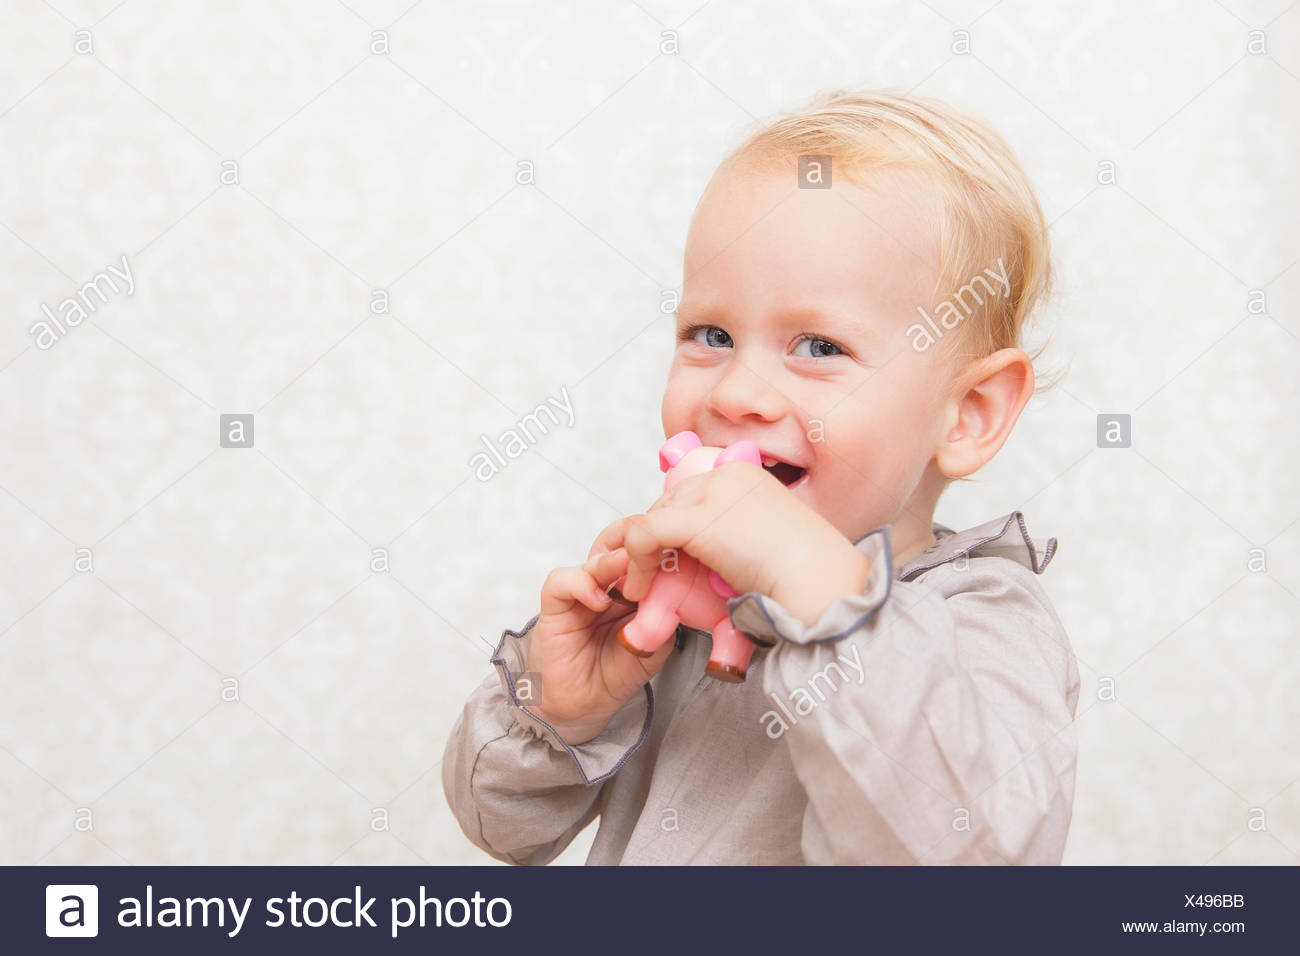 Portrait of a smiling boy holding a pink toy - Stock Image